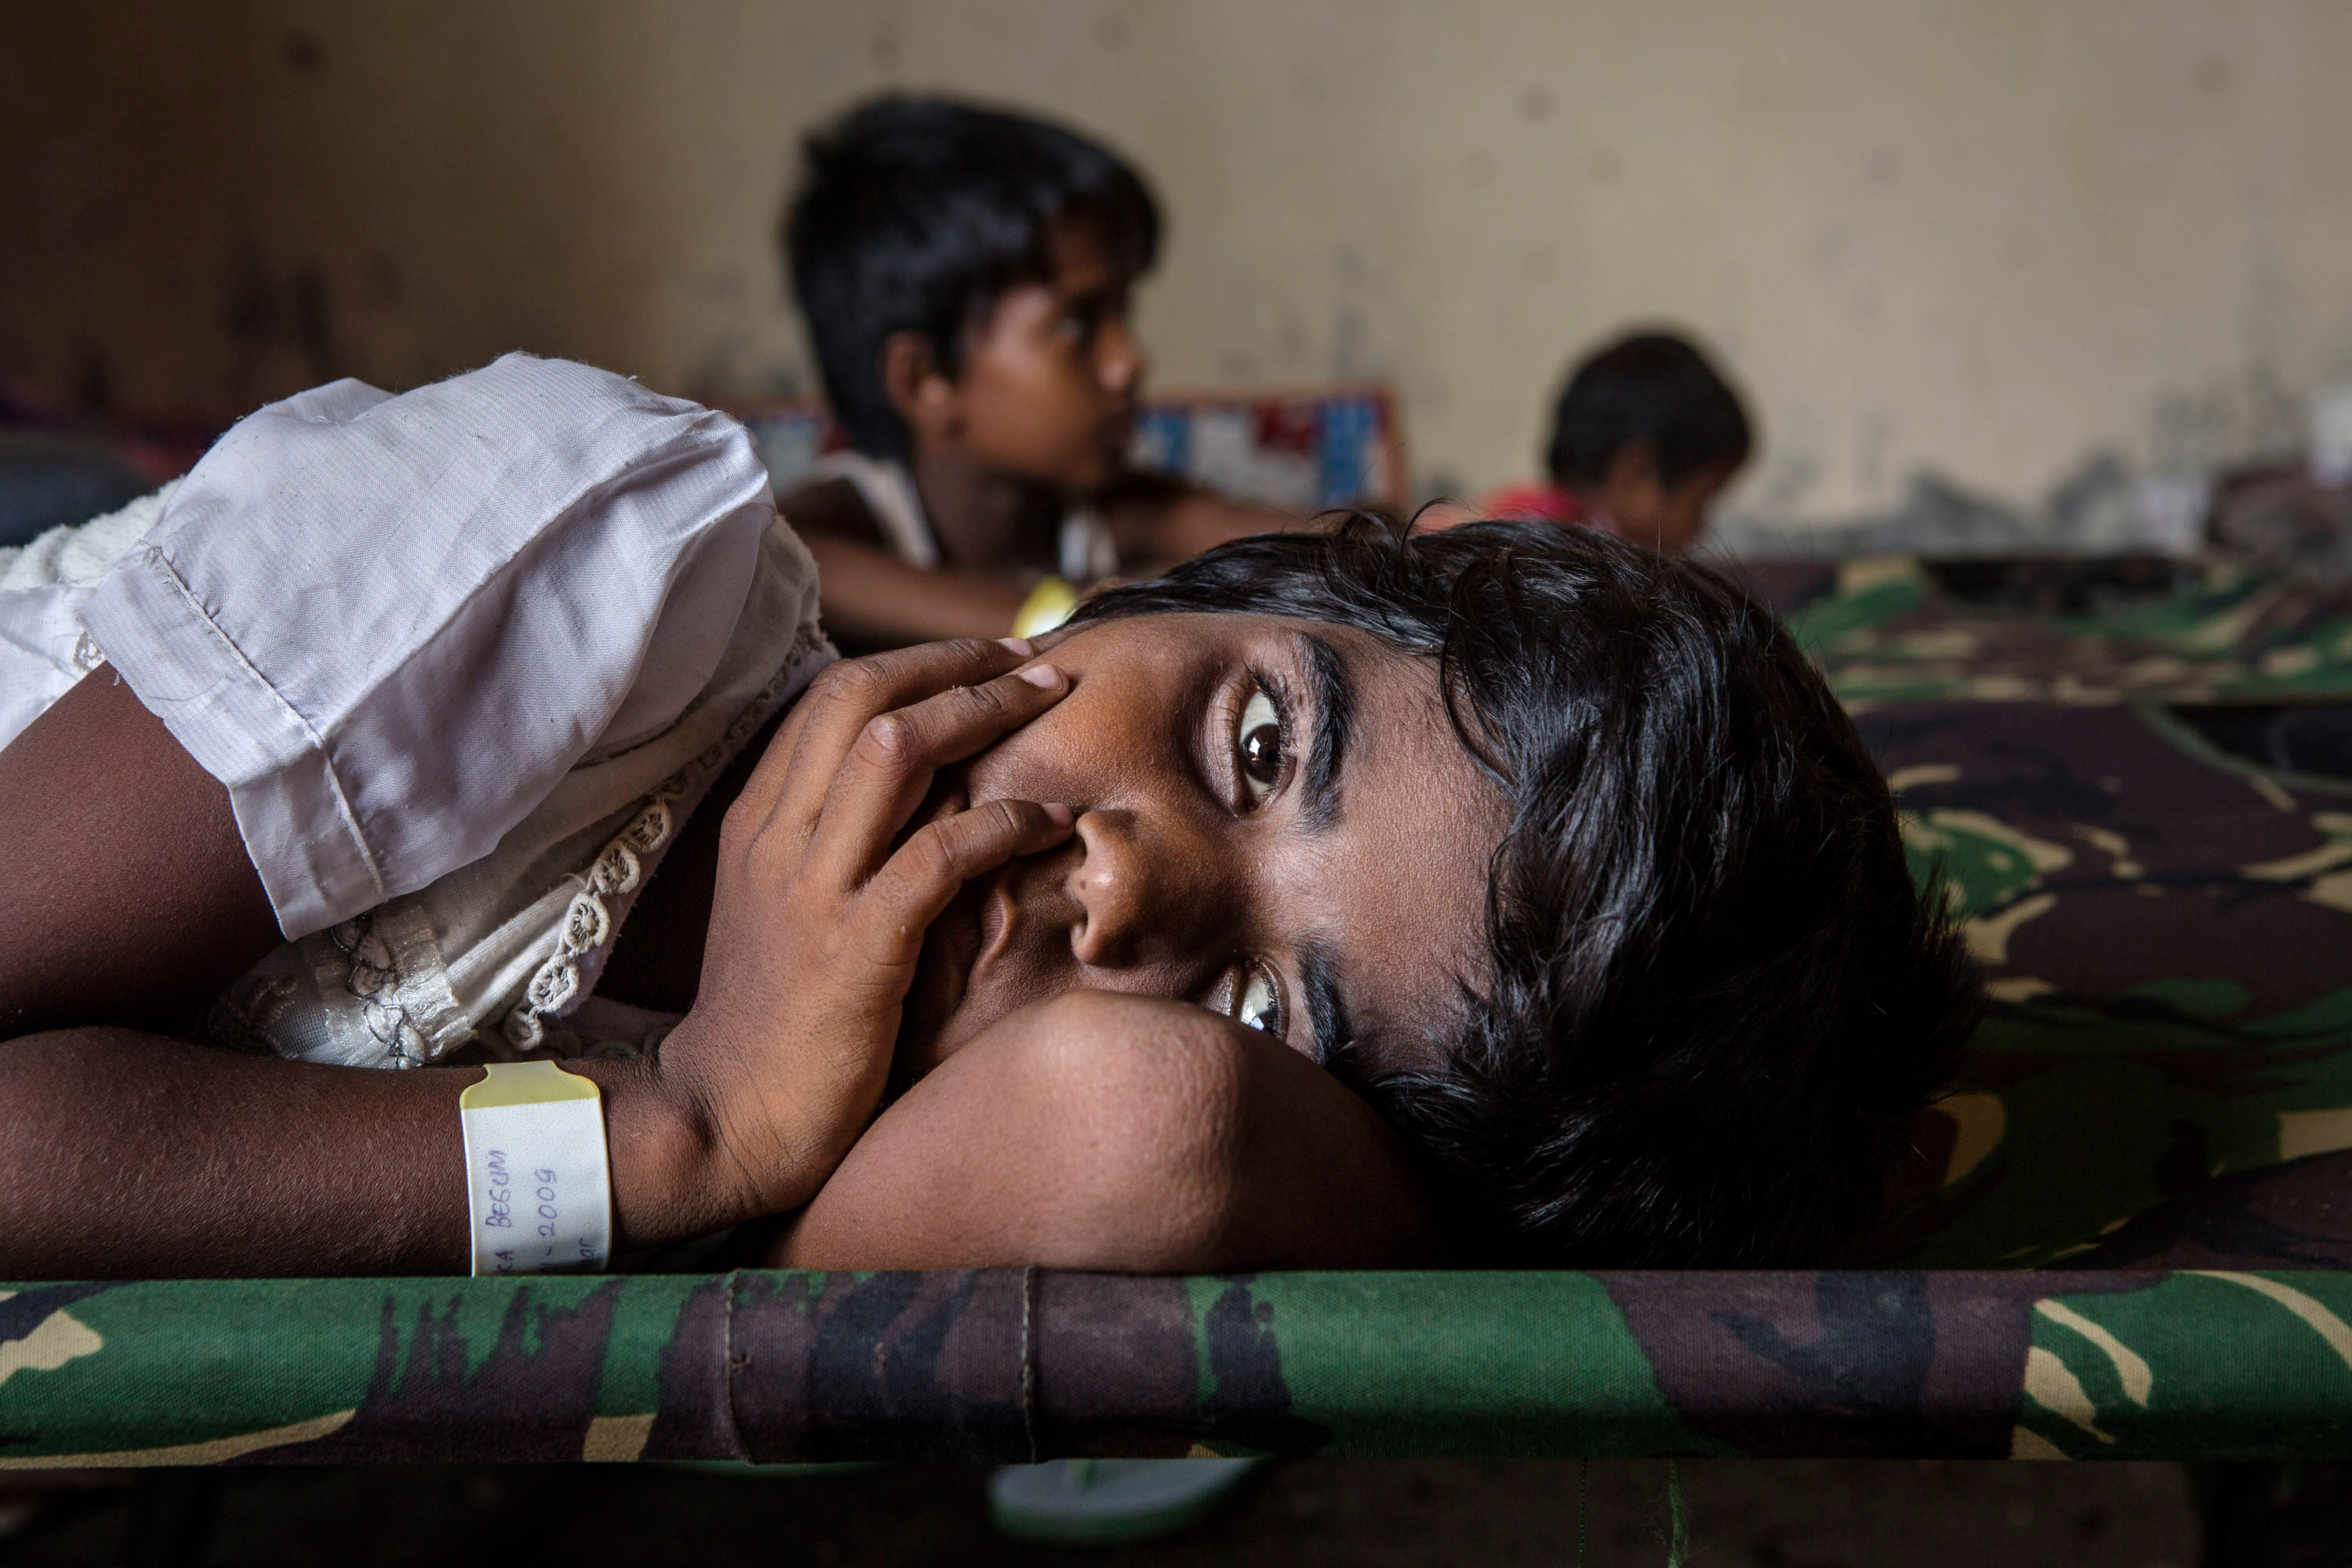 A Rohingya girl rests at a refugee shelter Aceh, Indonesia on May 19, 2015.